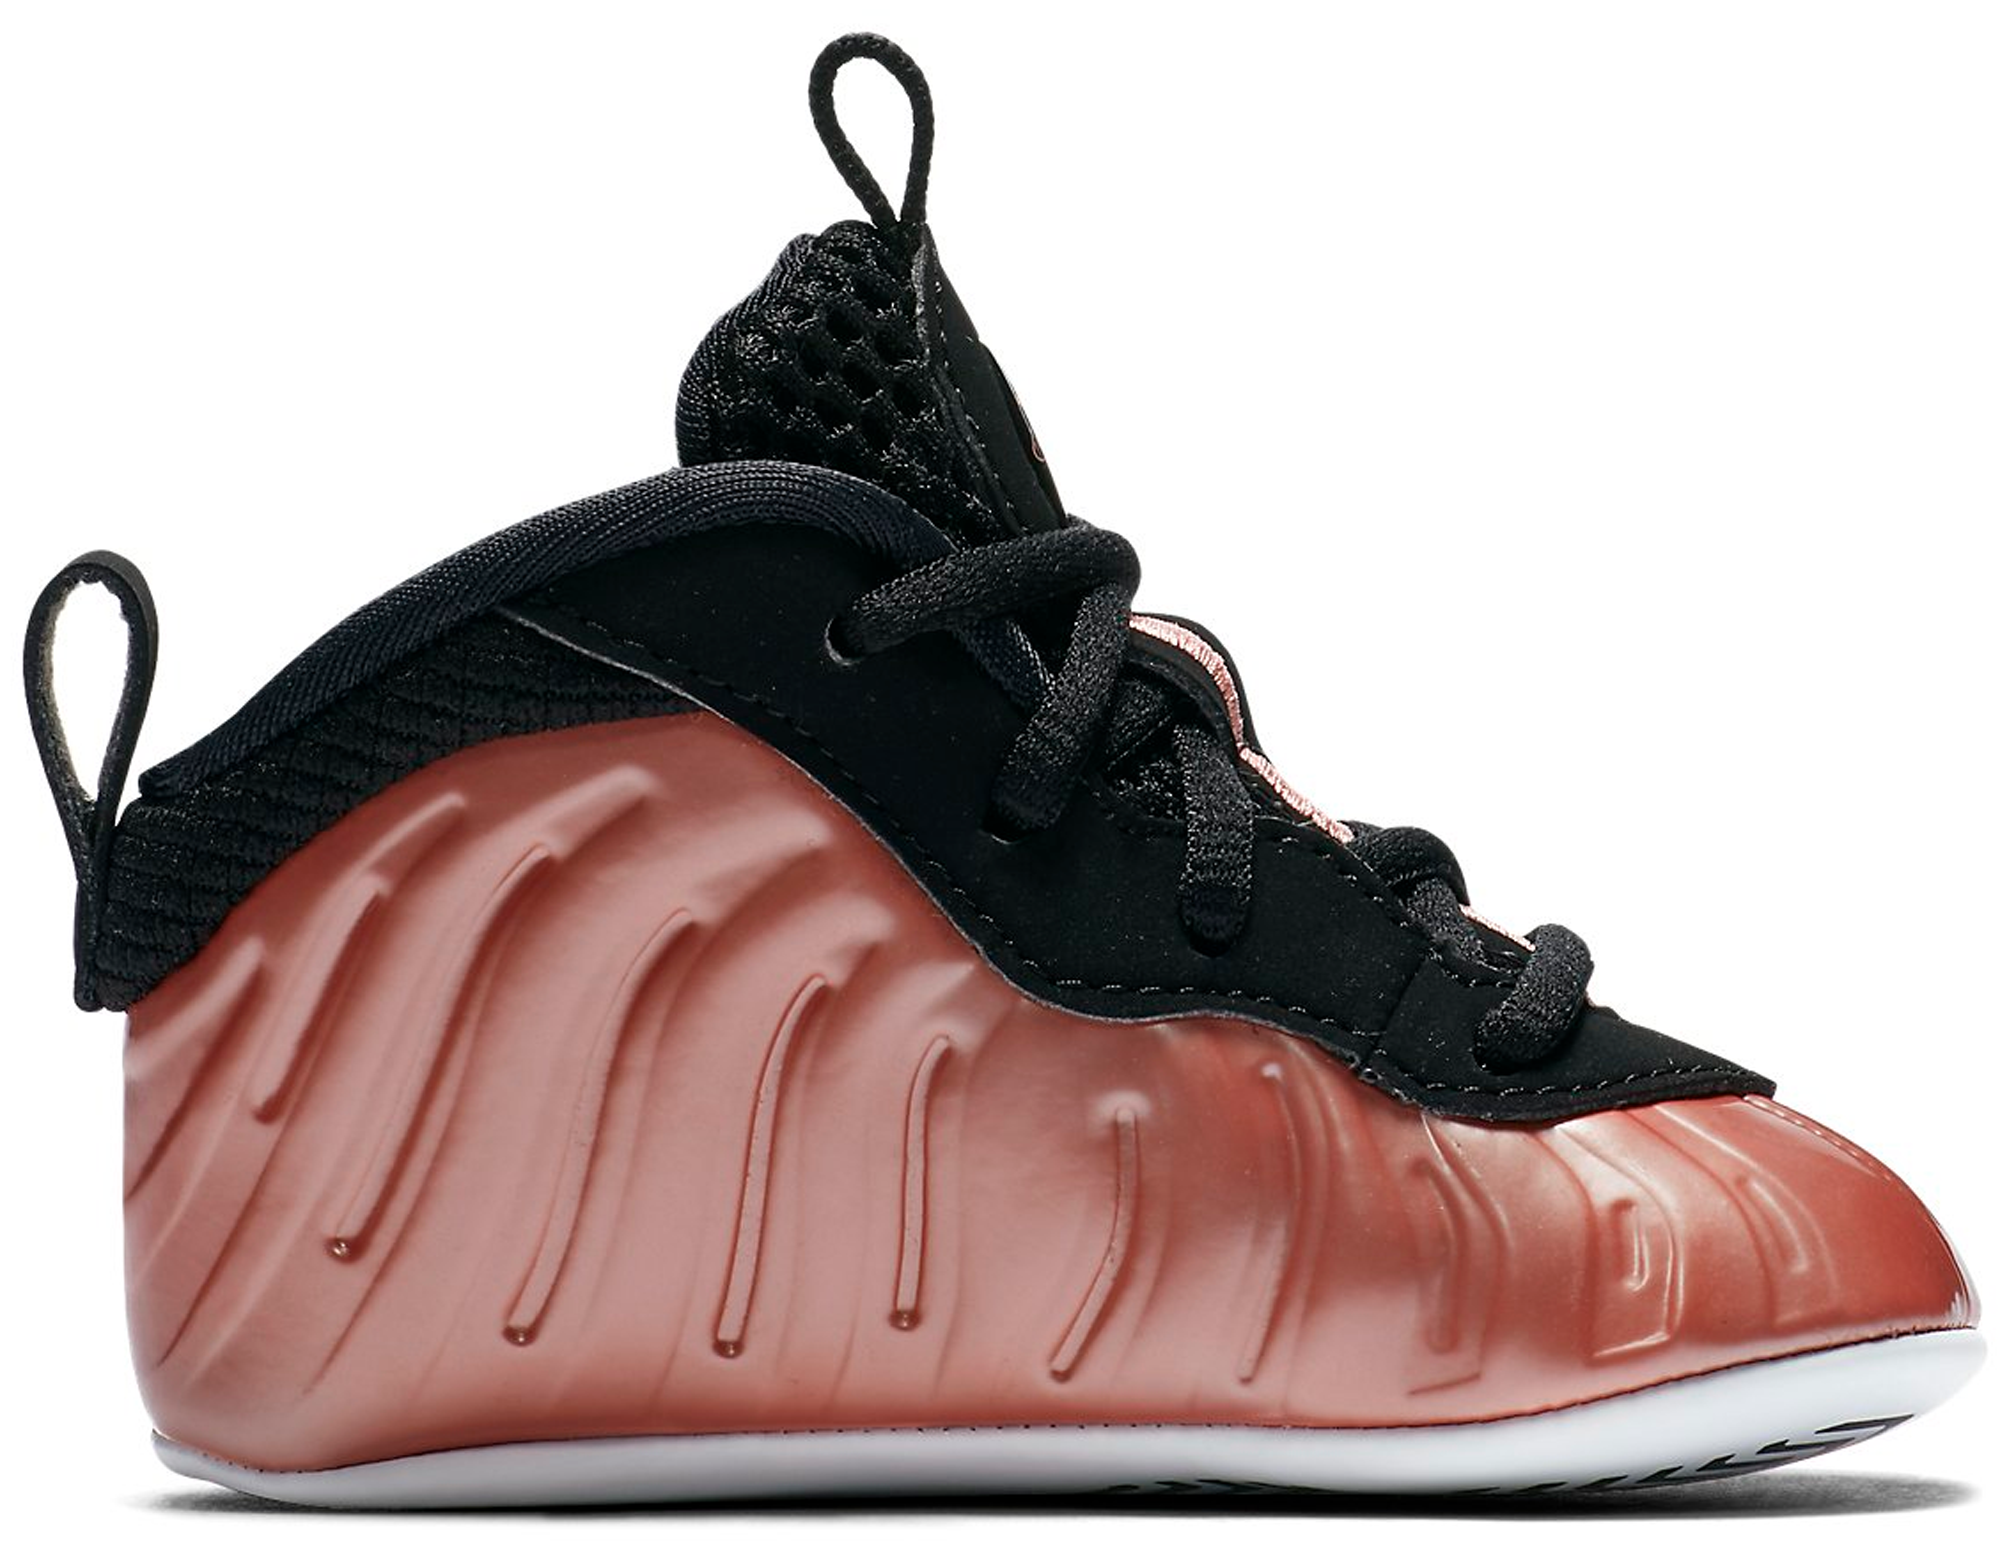 Nike Air Foamposite One Rugged Orange SneakerFits.com